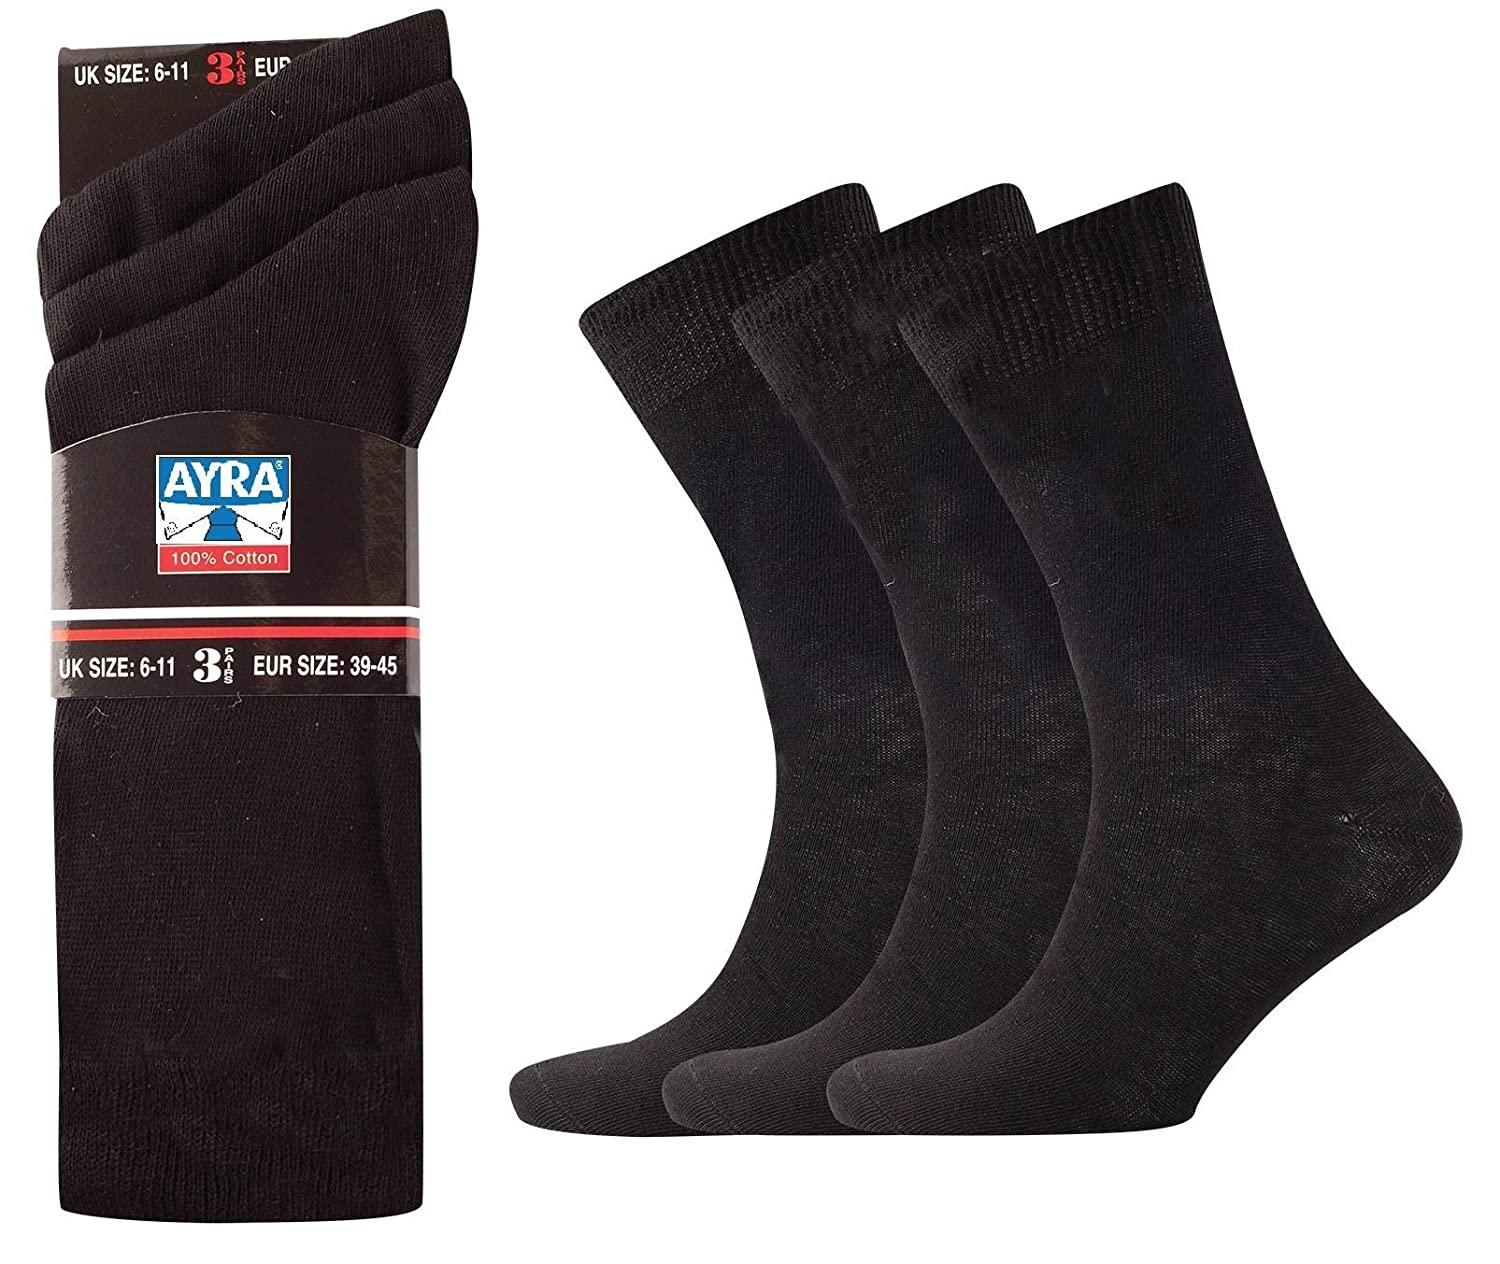 12 Pairs Mens 100% Cotton Black Socks Uk size 6 - 11: Amazon.co.uk: Clothing